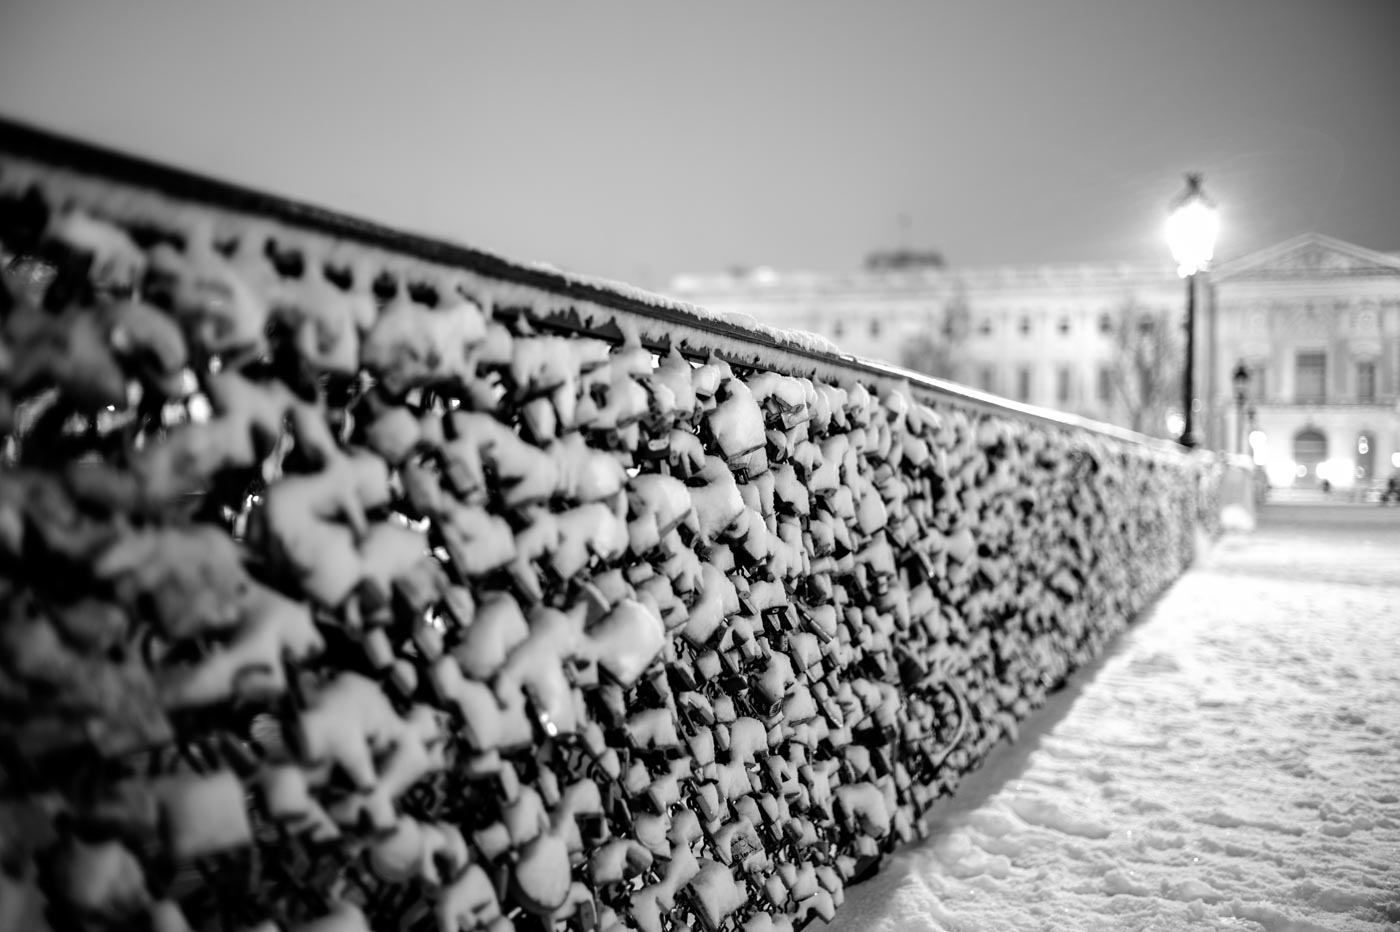 Snowy Lovers' Bridge